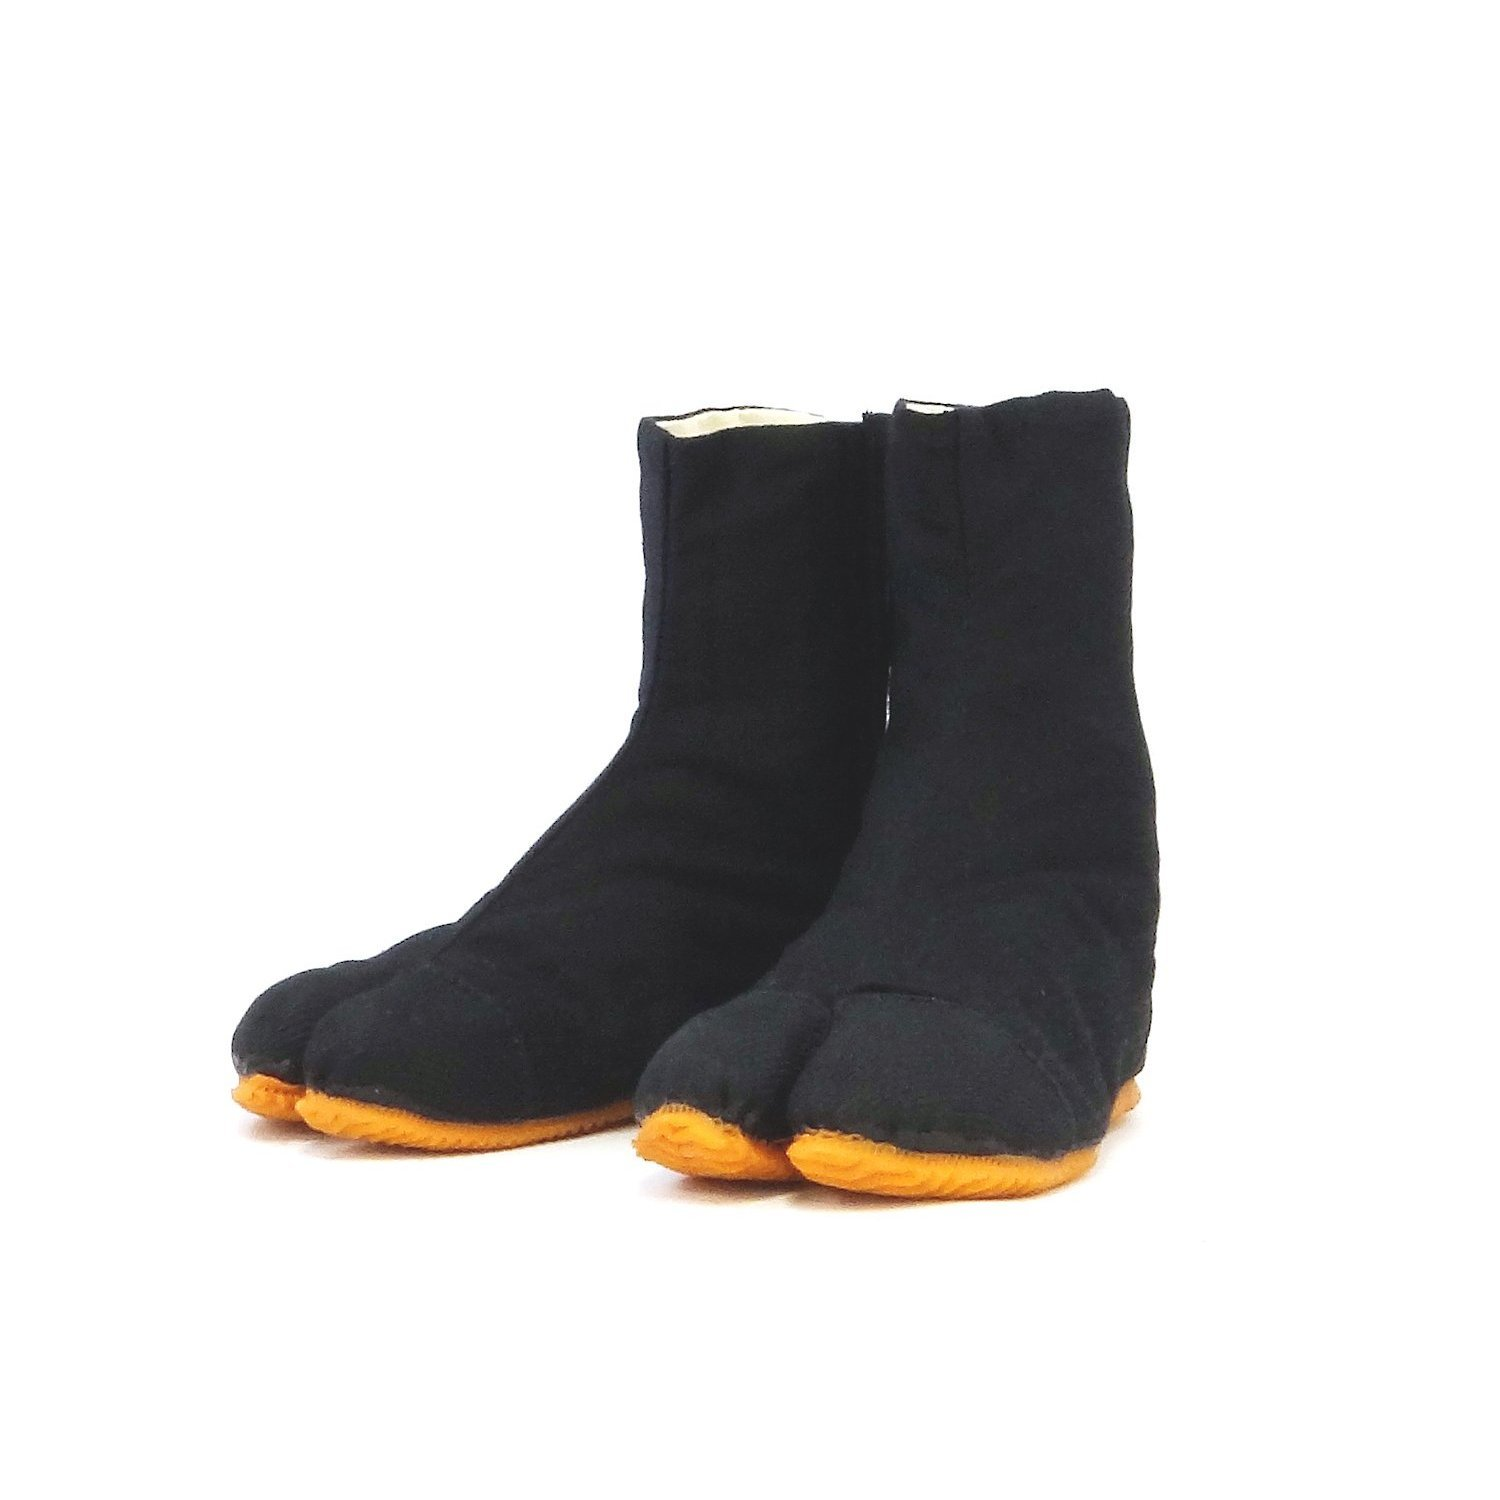 Child's Ninja Shoes, Tabi Boots, Jikatabi, Rikio Tabi/ Travel Bag (JP 21.5 approx US 2.5 EU 32)